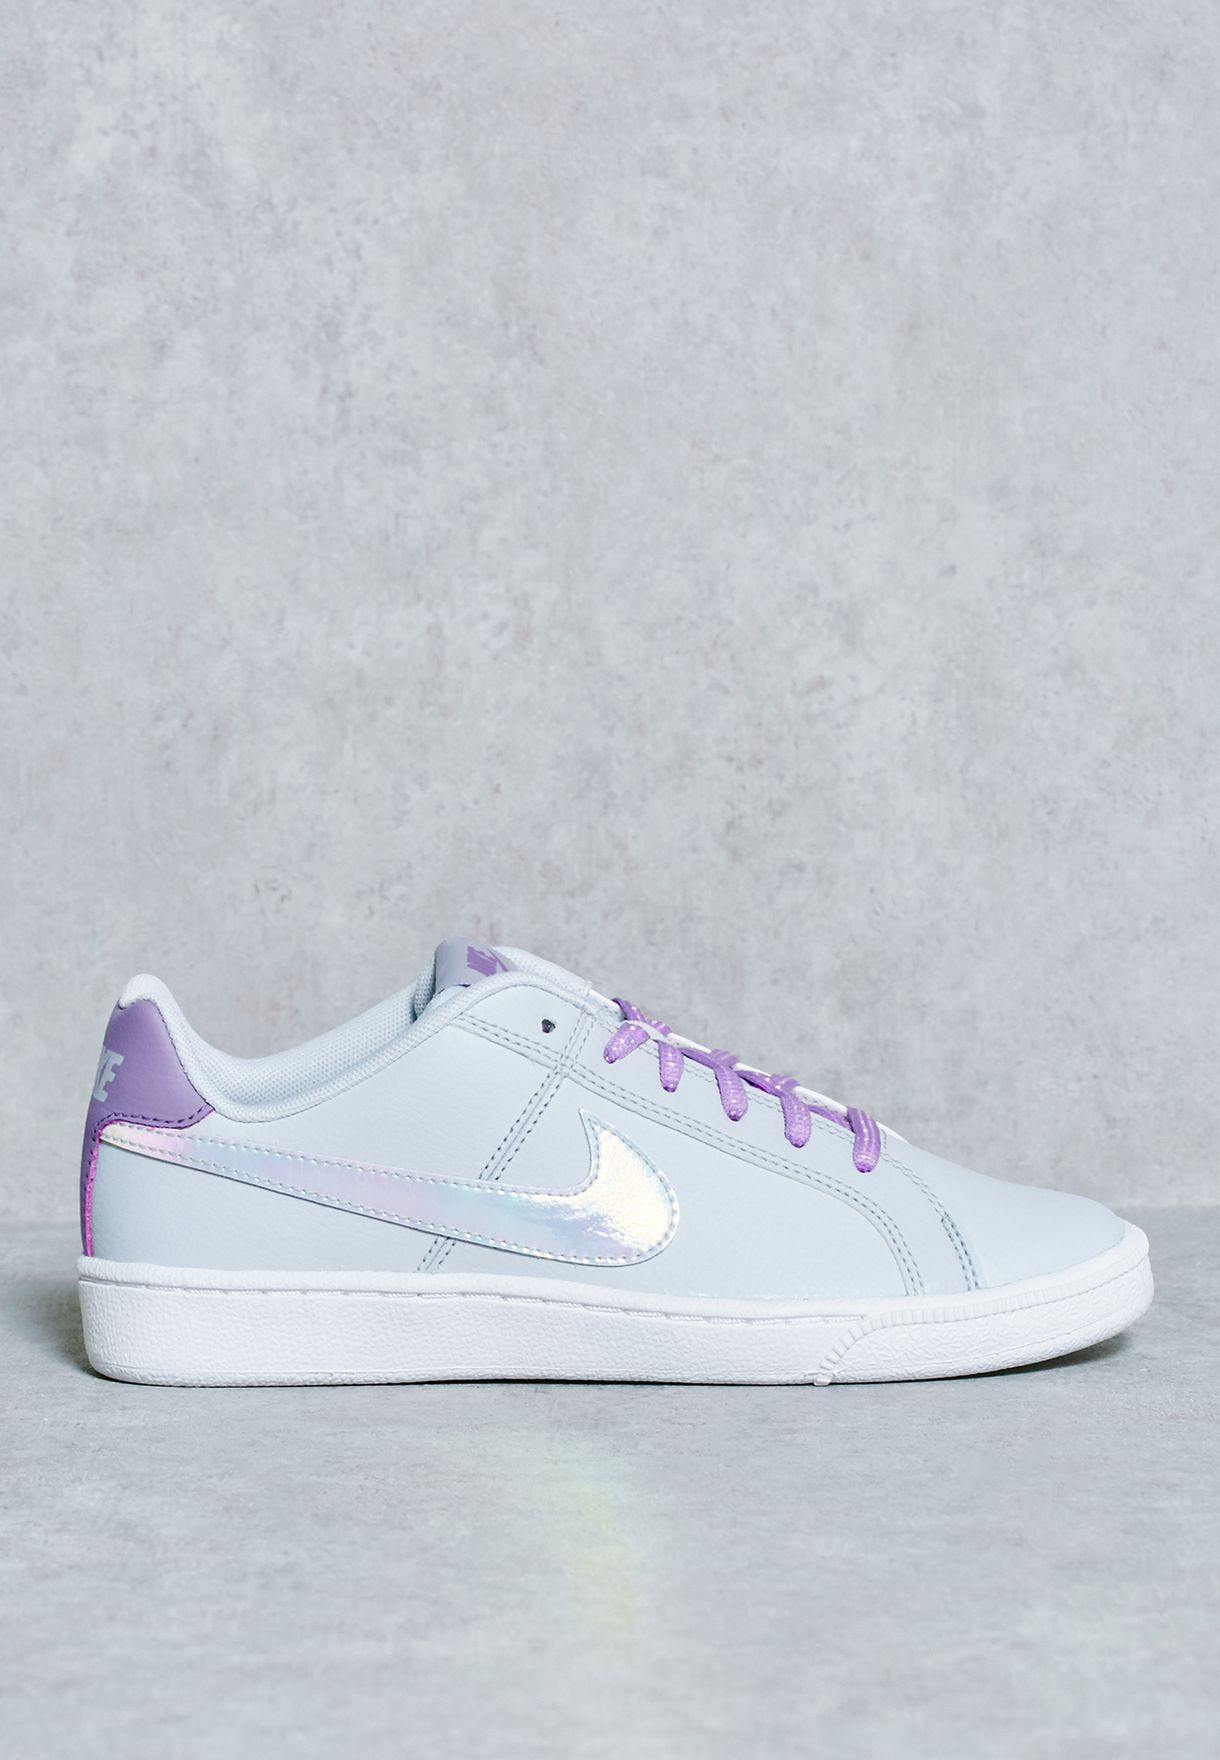 02f6a1dcd8a85 Shop Nike grey Court Royale SE Youth 859512-001 for Kids in Saudi ...